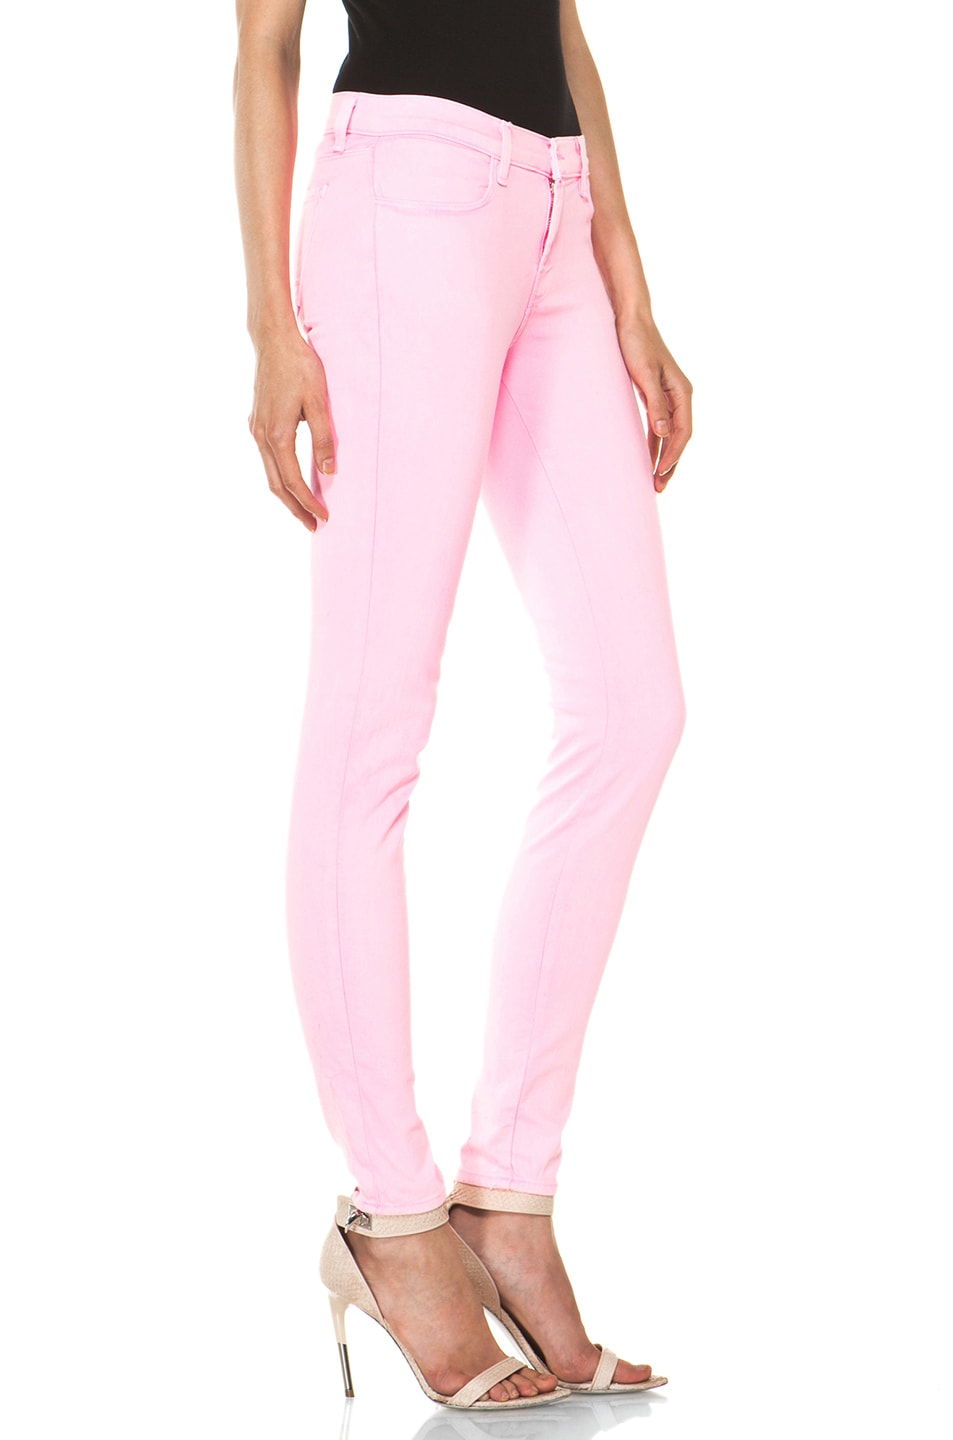 Image 3 of J Brand PINK PARTY EXCLUSIVE Midrise Super Skinny in Pink Party